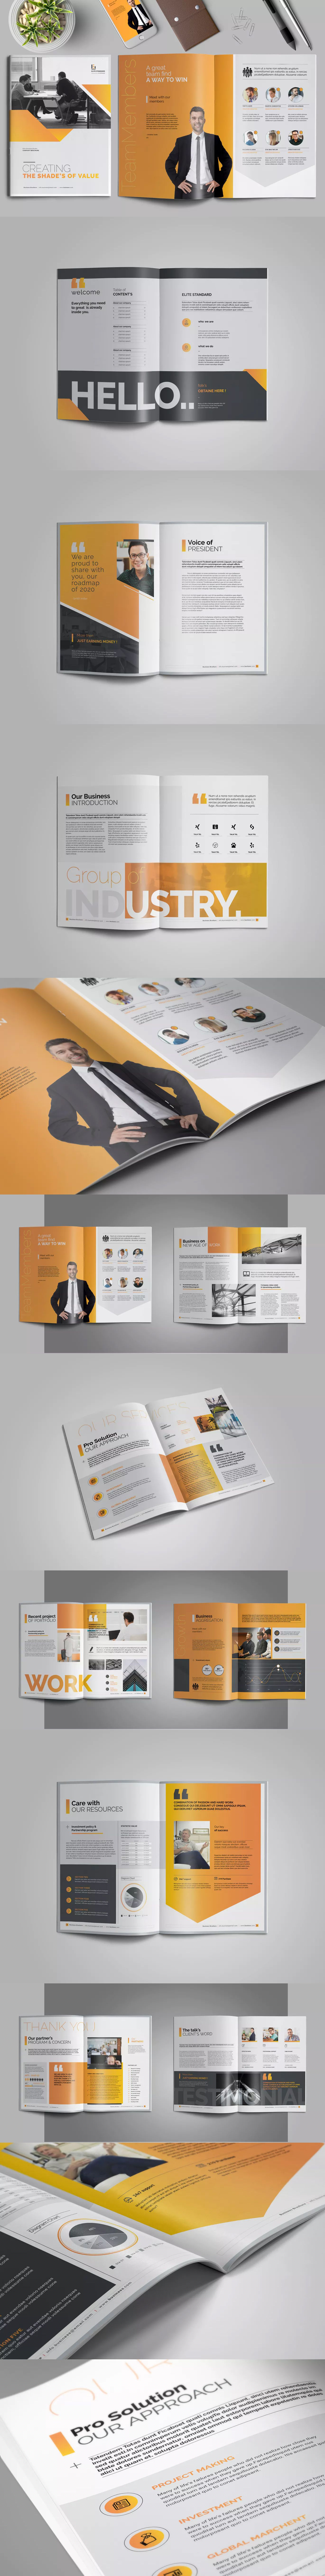 Business Brochure Template Indesign Indd A4 And Us Letter Size